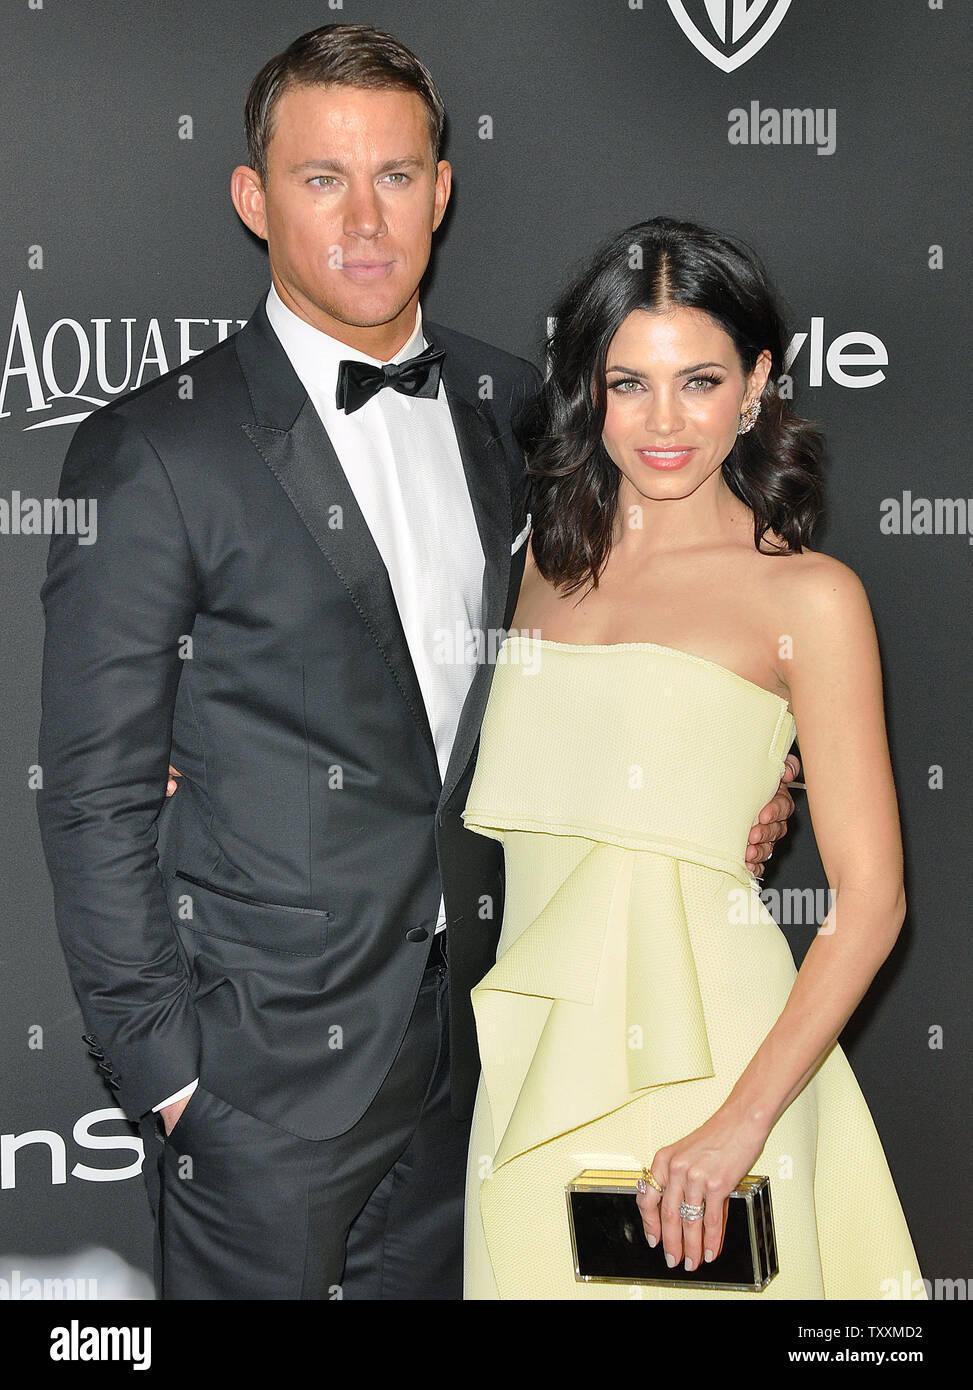 Channing Tatum und seiner Frau Jenna Dewan-Tatum kommen an der lnStyle und Warner Brothers Golden Globes After Party im Beverly Hilton Hotel in Beverly Hills, Kalifornien am 11. Januar 2015. Foto von Christine Kauen/UPI Stockbild